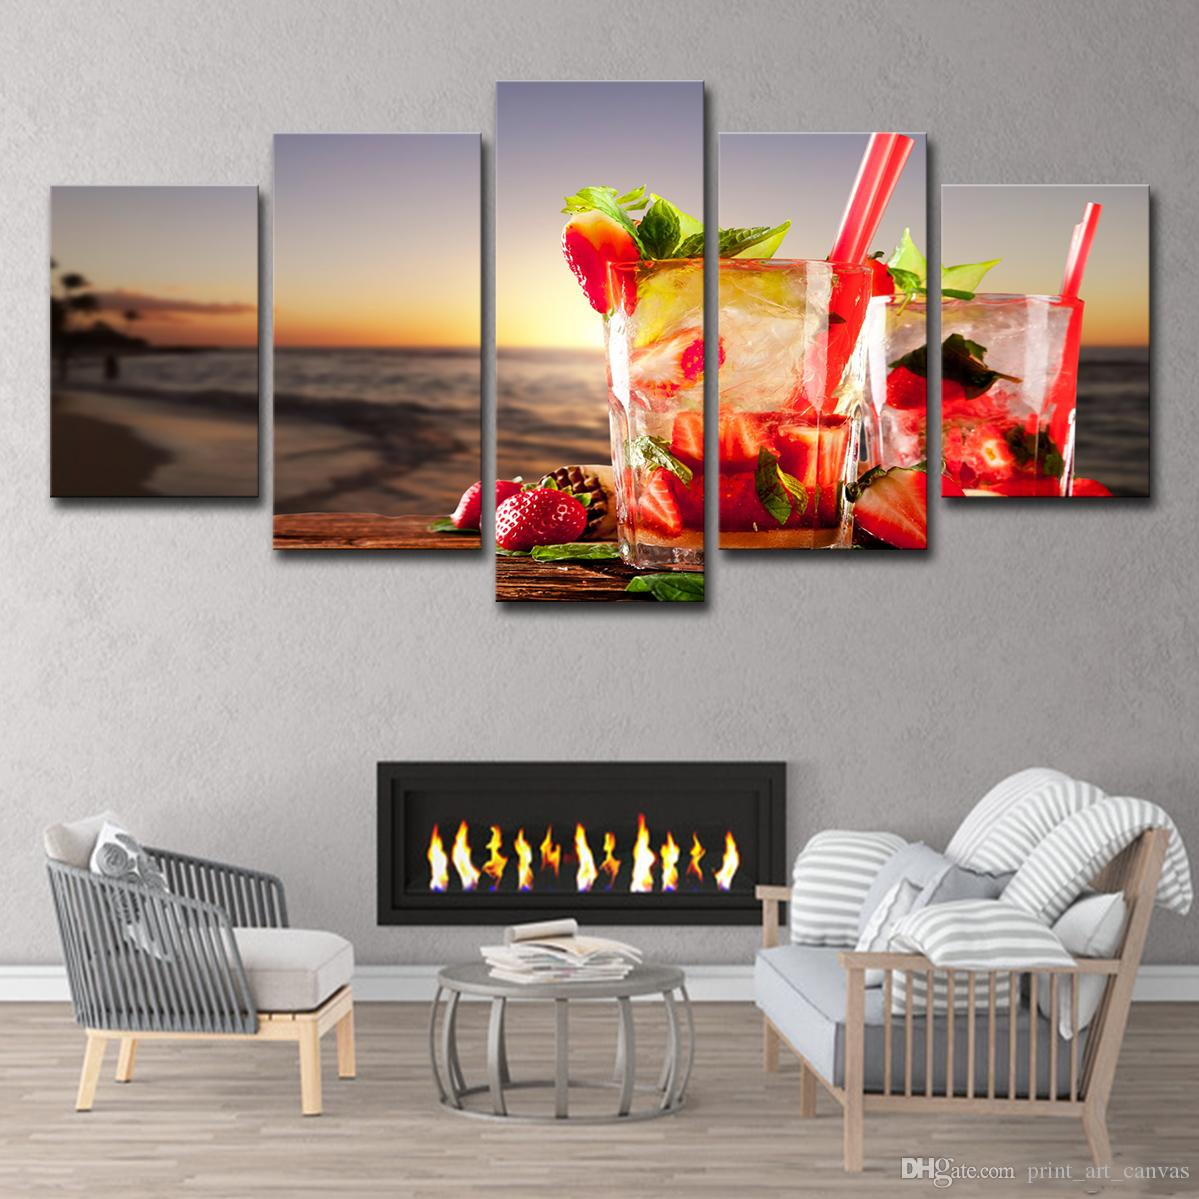 5 Pieces HD Printed Beach Sea Drinks Cocktails Painting Canvas Print Room Decor Print Poster Picture Canvas Free Shipping